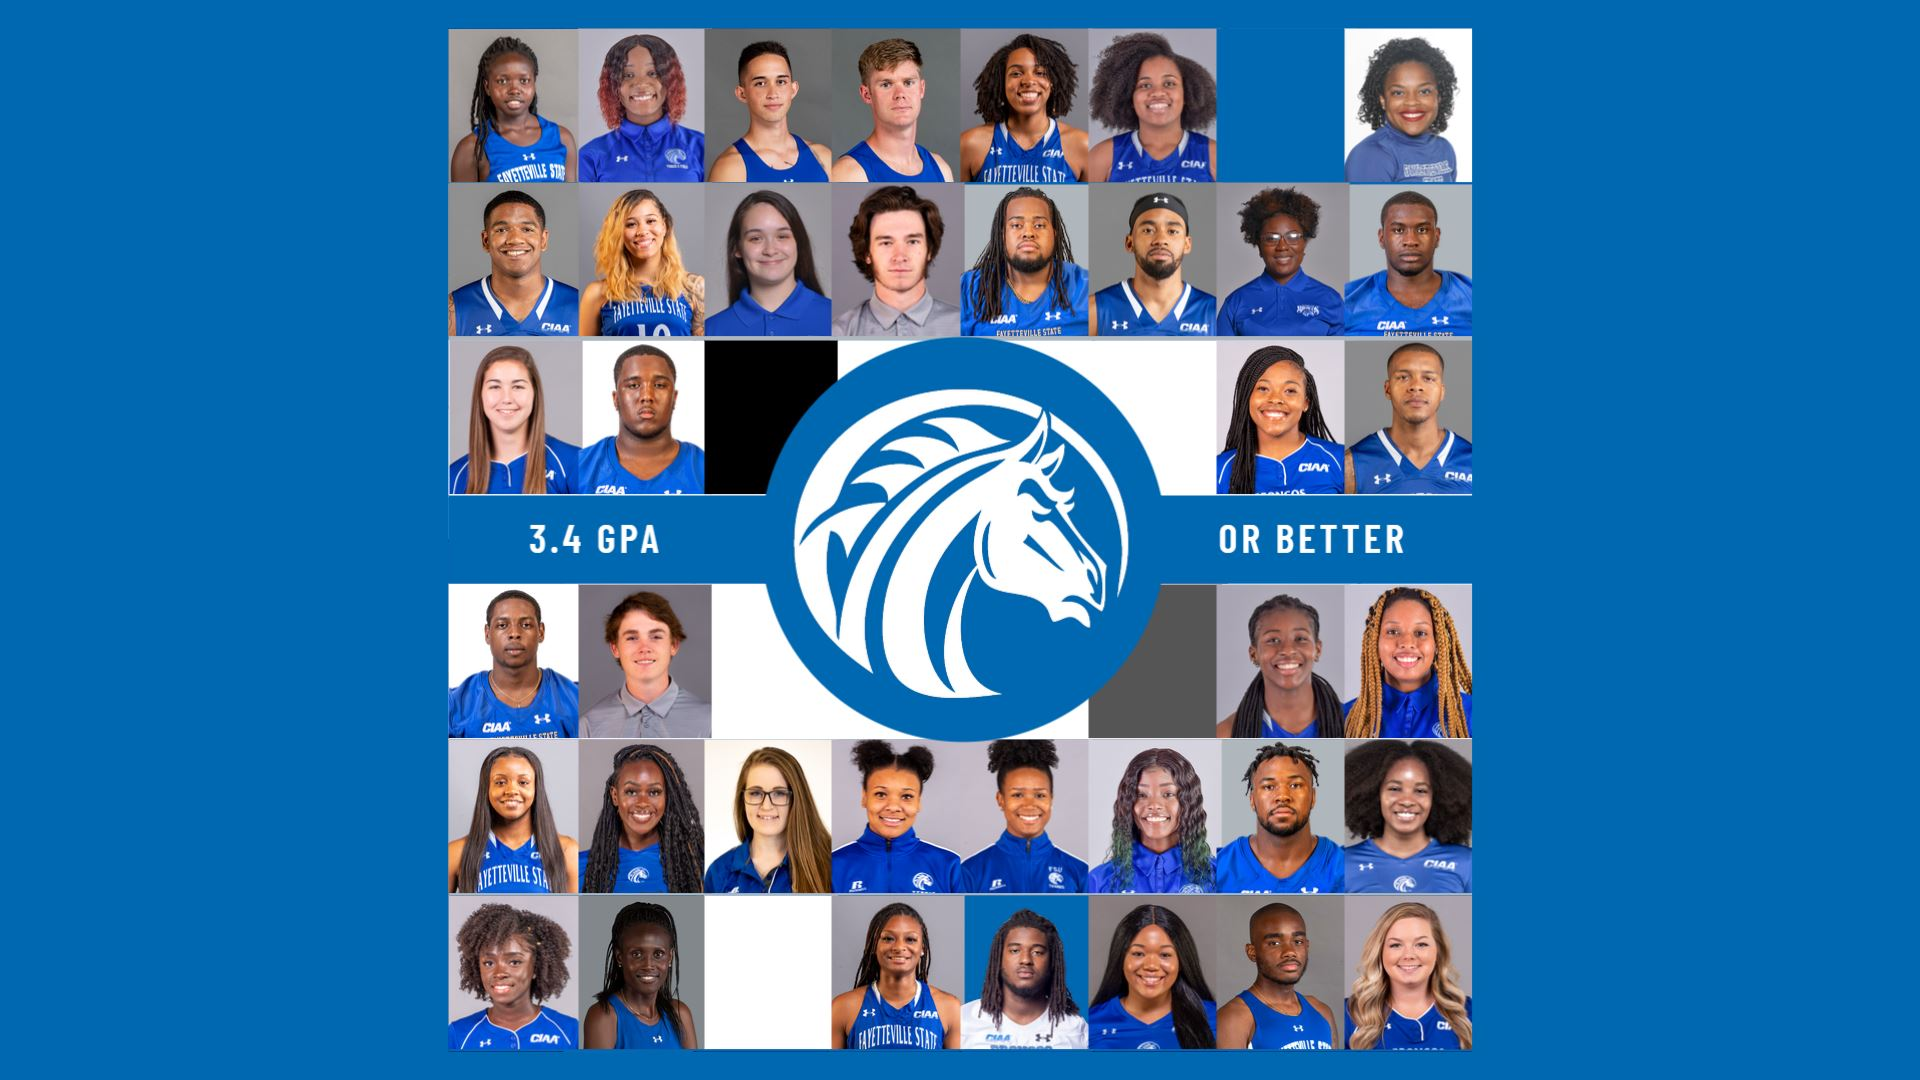 Student-Athletes with 3.4 GPA or better